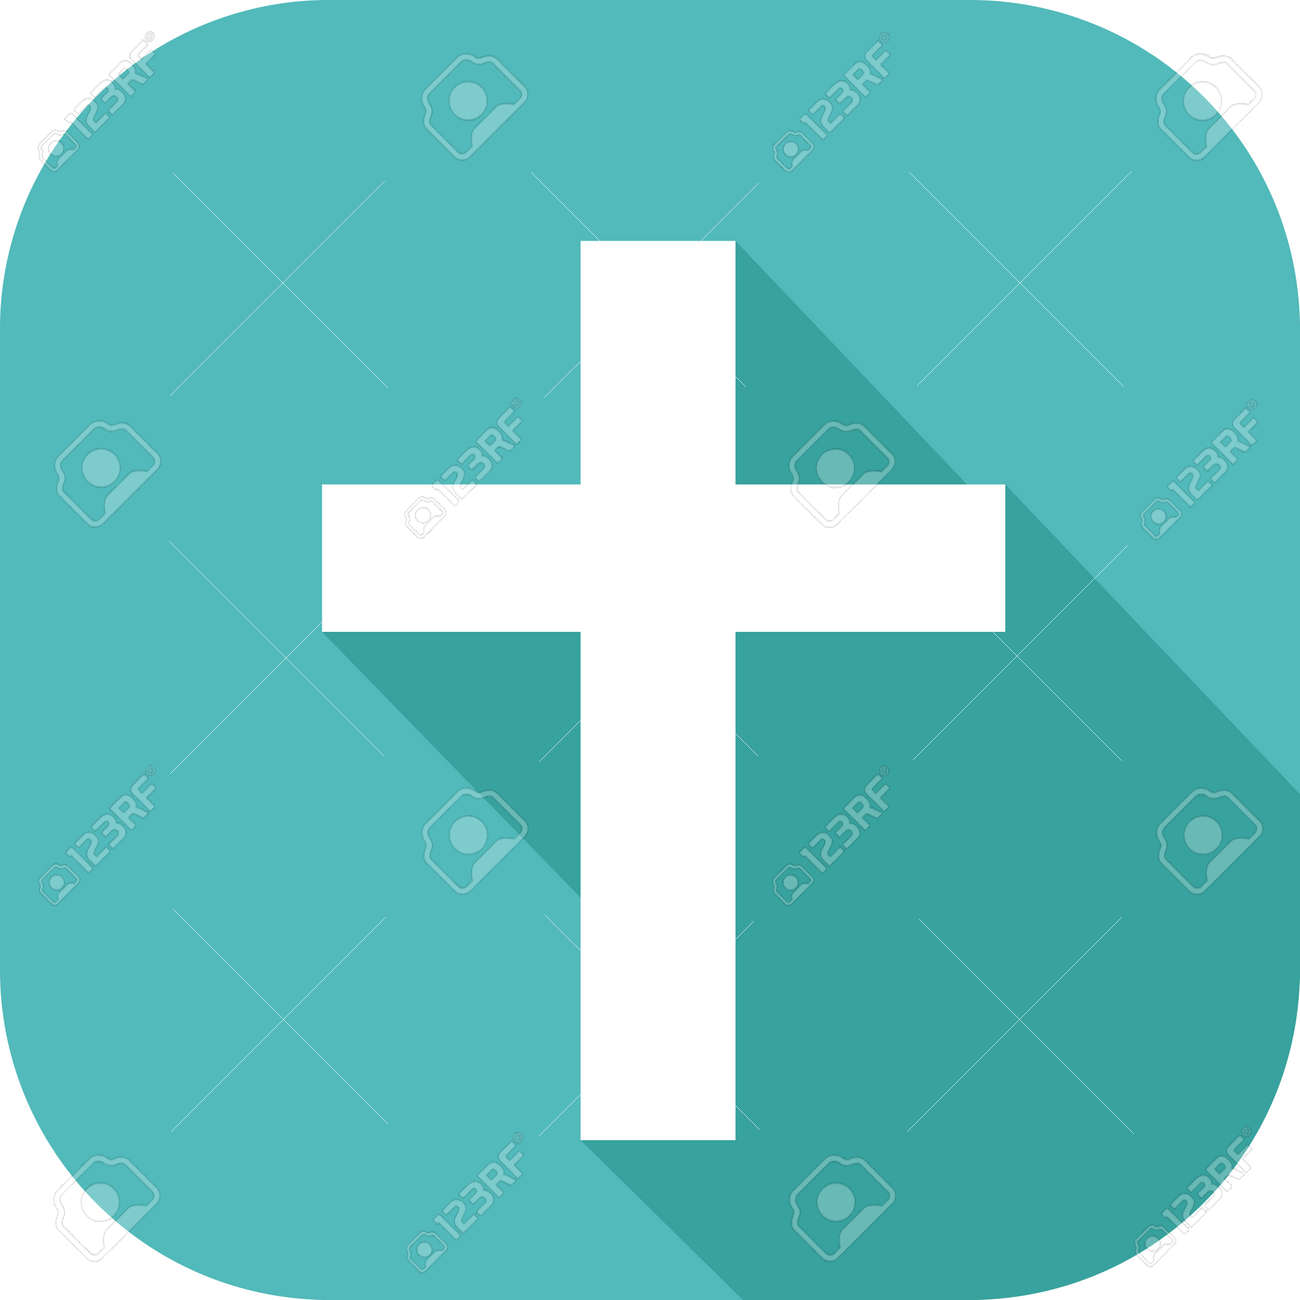 Icon Of A Cross Symbol Of The Religion Of Christianity Royalty Free